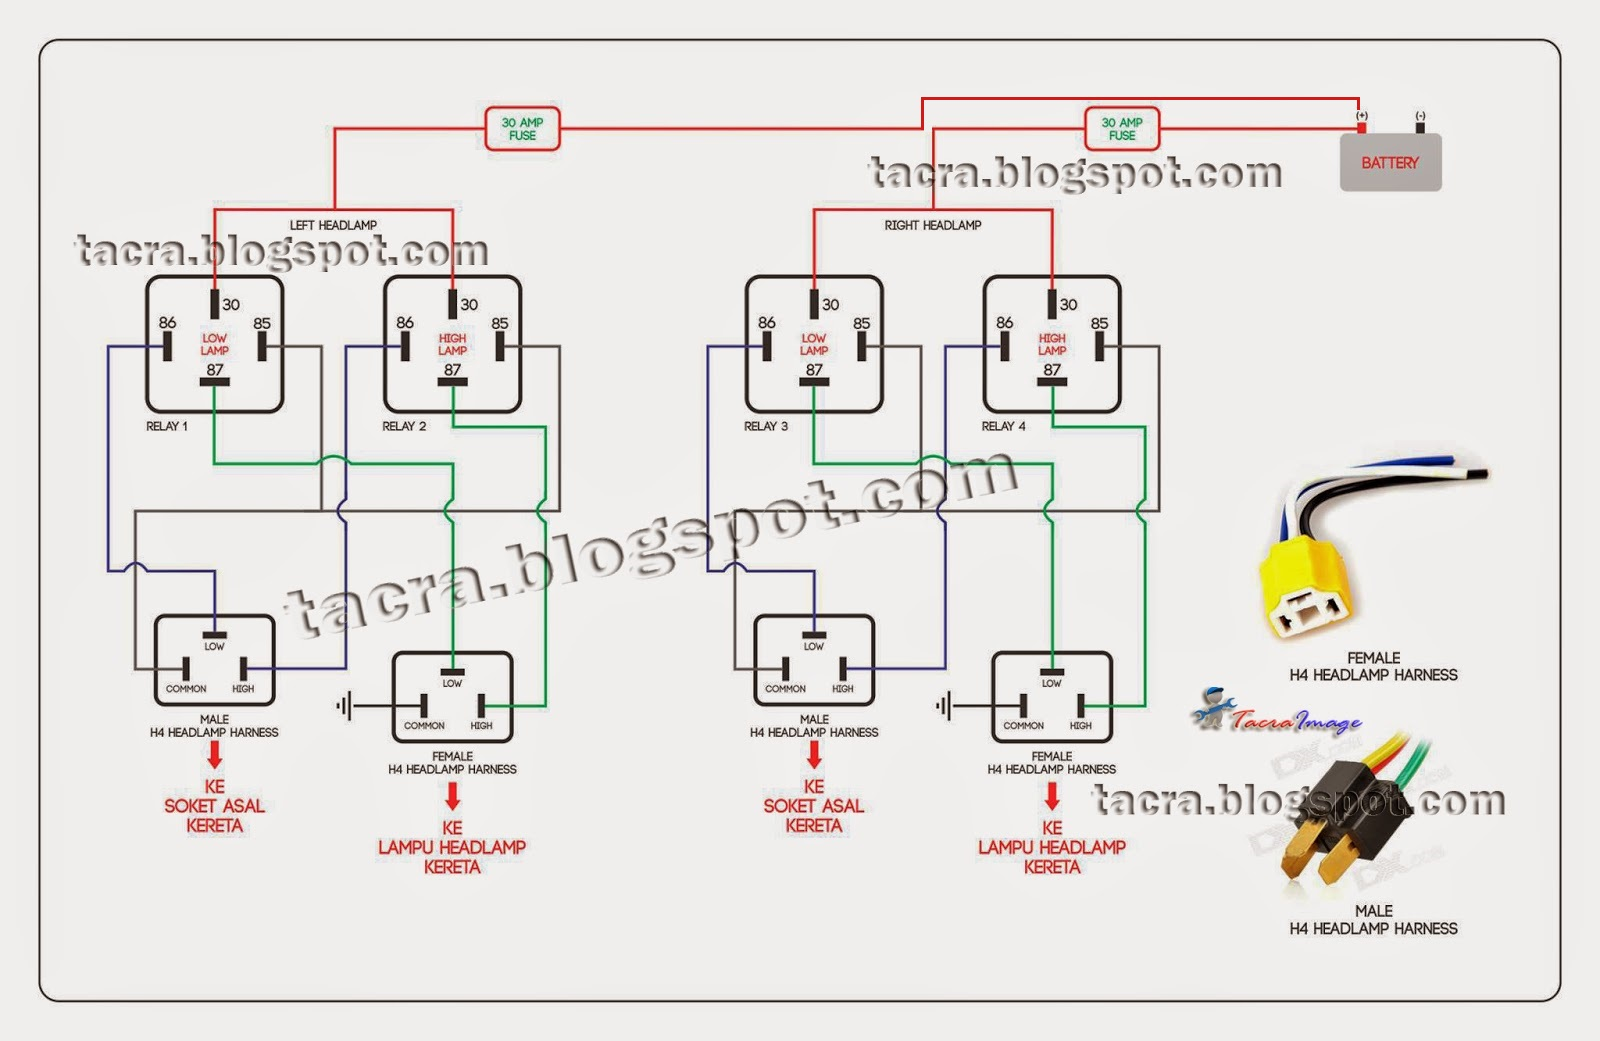 Daihatsu Mira Eps Wiring Diagram Automotive Diagrams Fuse Box Cool Perodua Kancil Engine Photos Best Image 1995